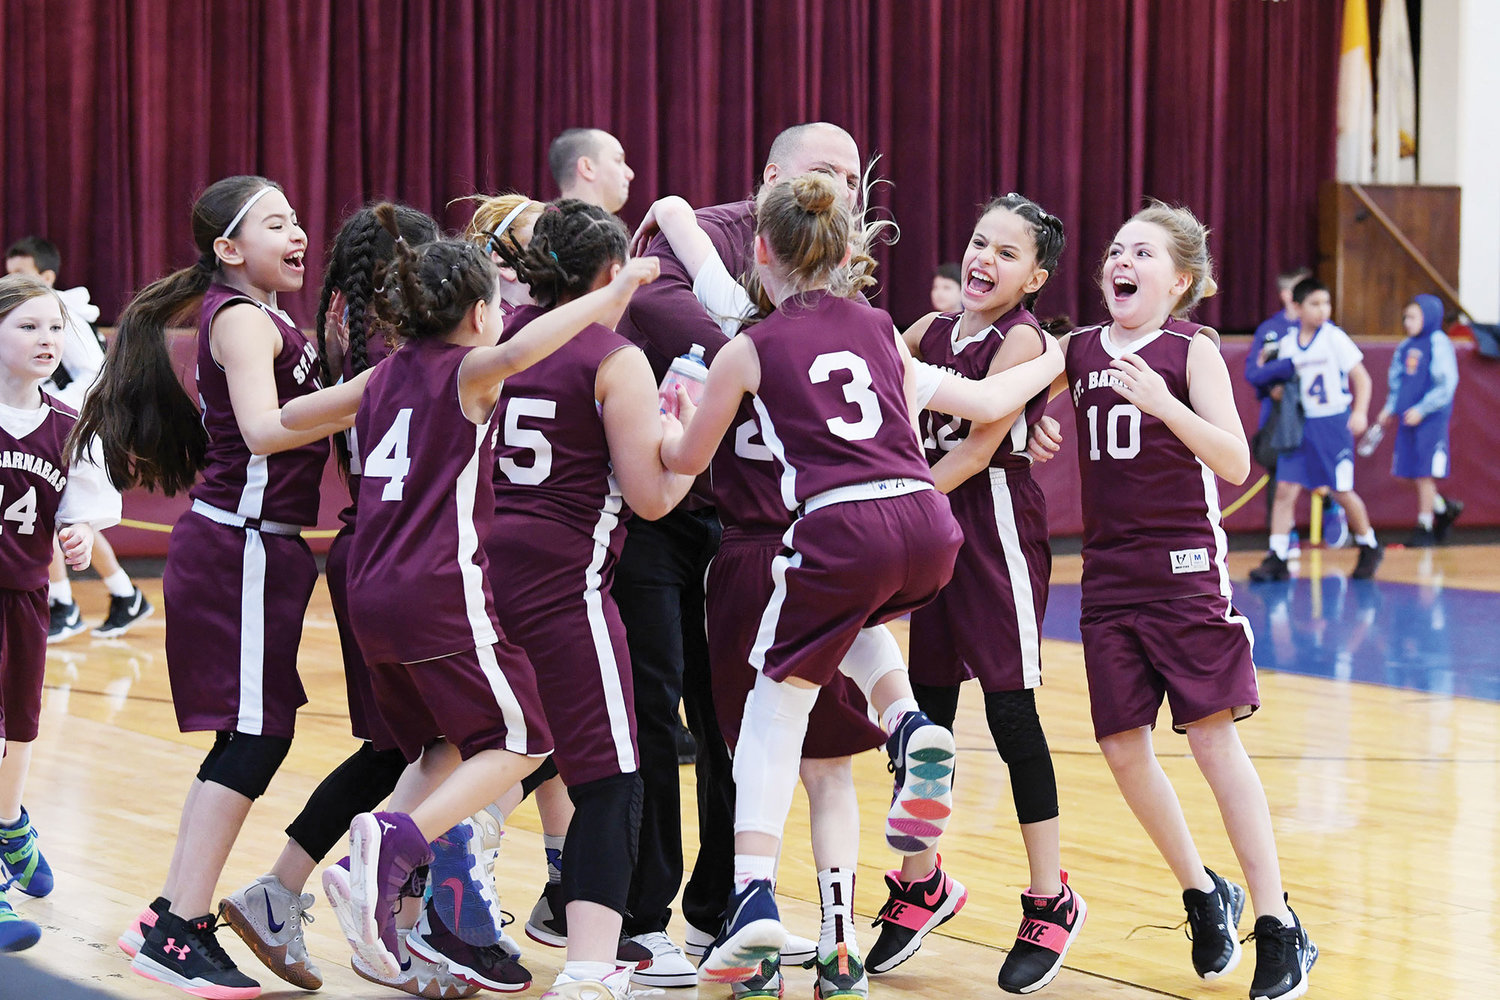 The fourth-grade girls from St. Barnabas, the Bronx, celebrate winning their CYO New York basketball championship with an 18-13 victory over St. Paul, Congers, at Msgr. Farrell High School on Staten Island March 16.